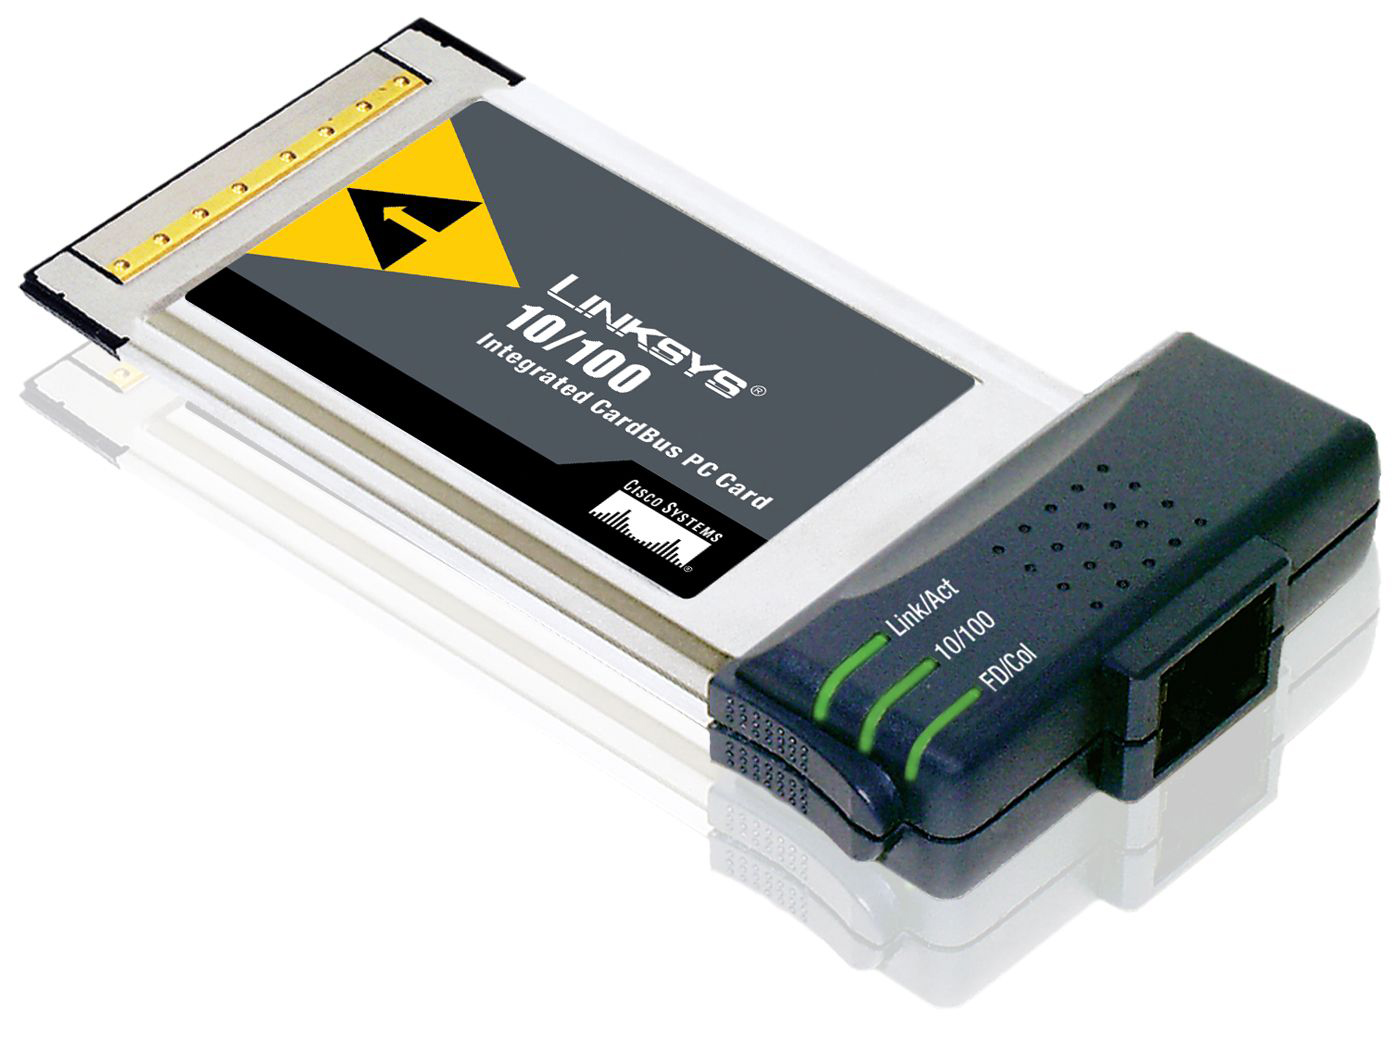 ETHERFAST 10100 INTEGRATED CARDBUS PC CARD DRIVERS FOR WINDOWS XP